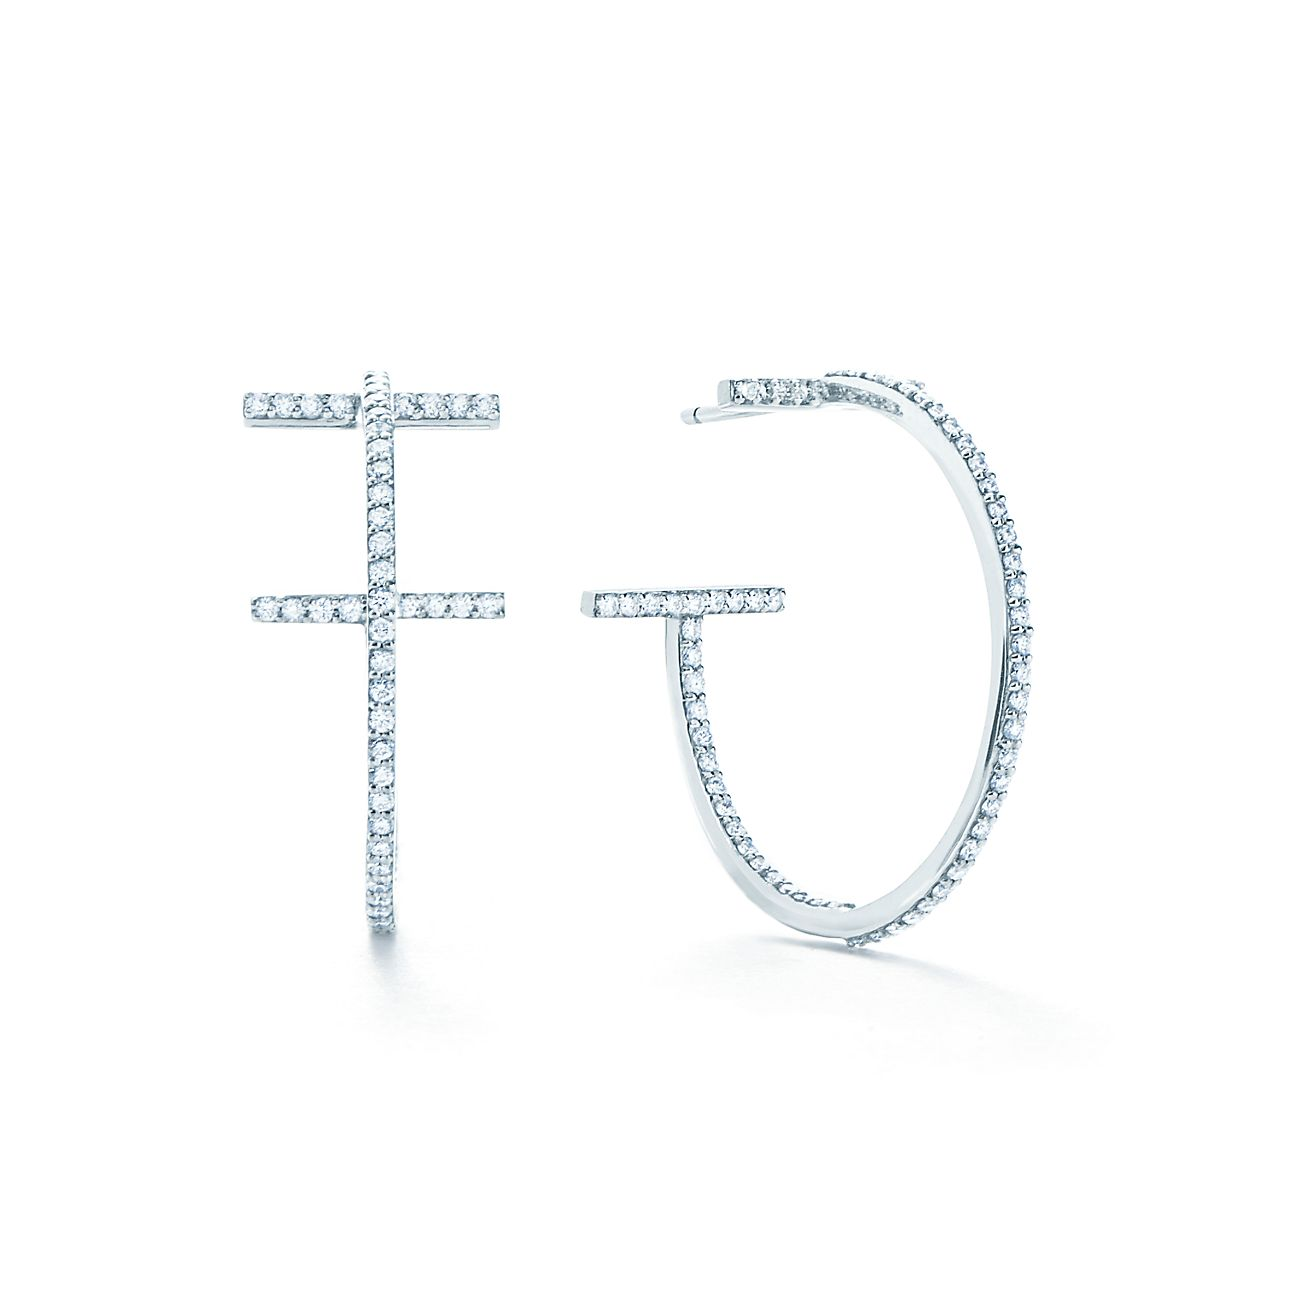 Tiffany T wire hoop earrings in 18k white gold with diamonds, medium ...